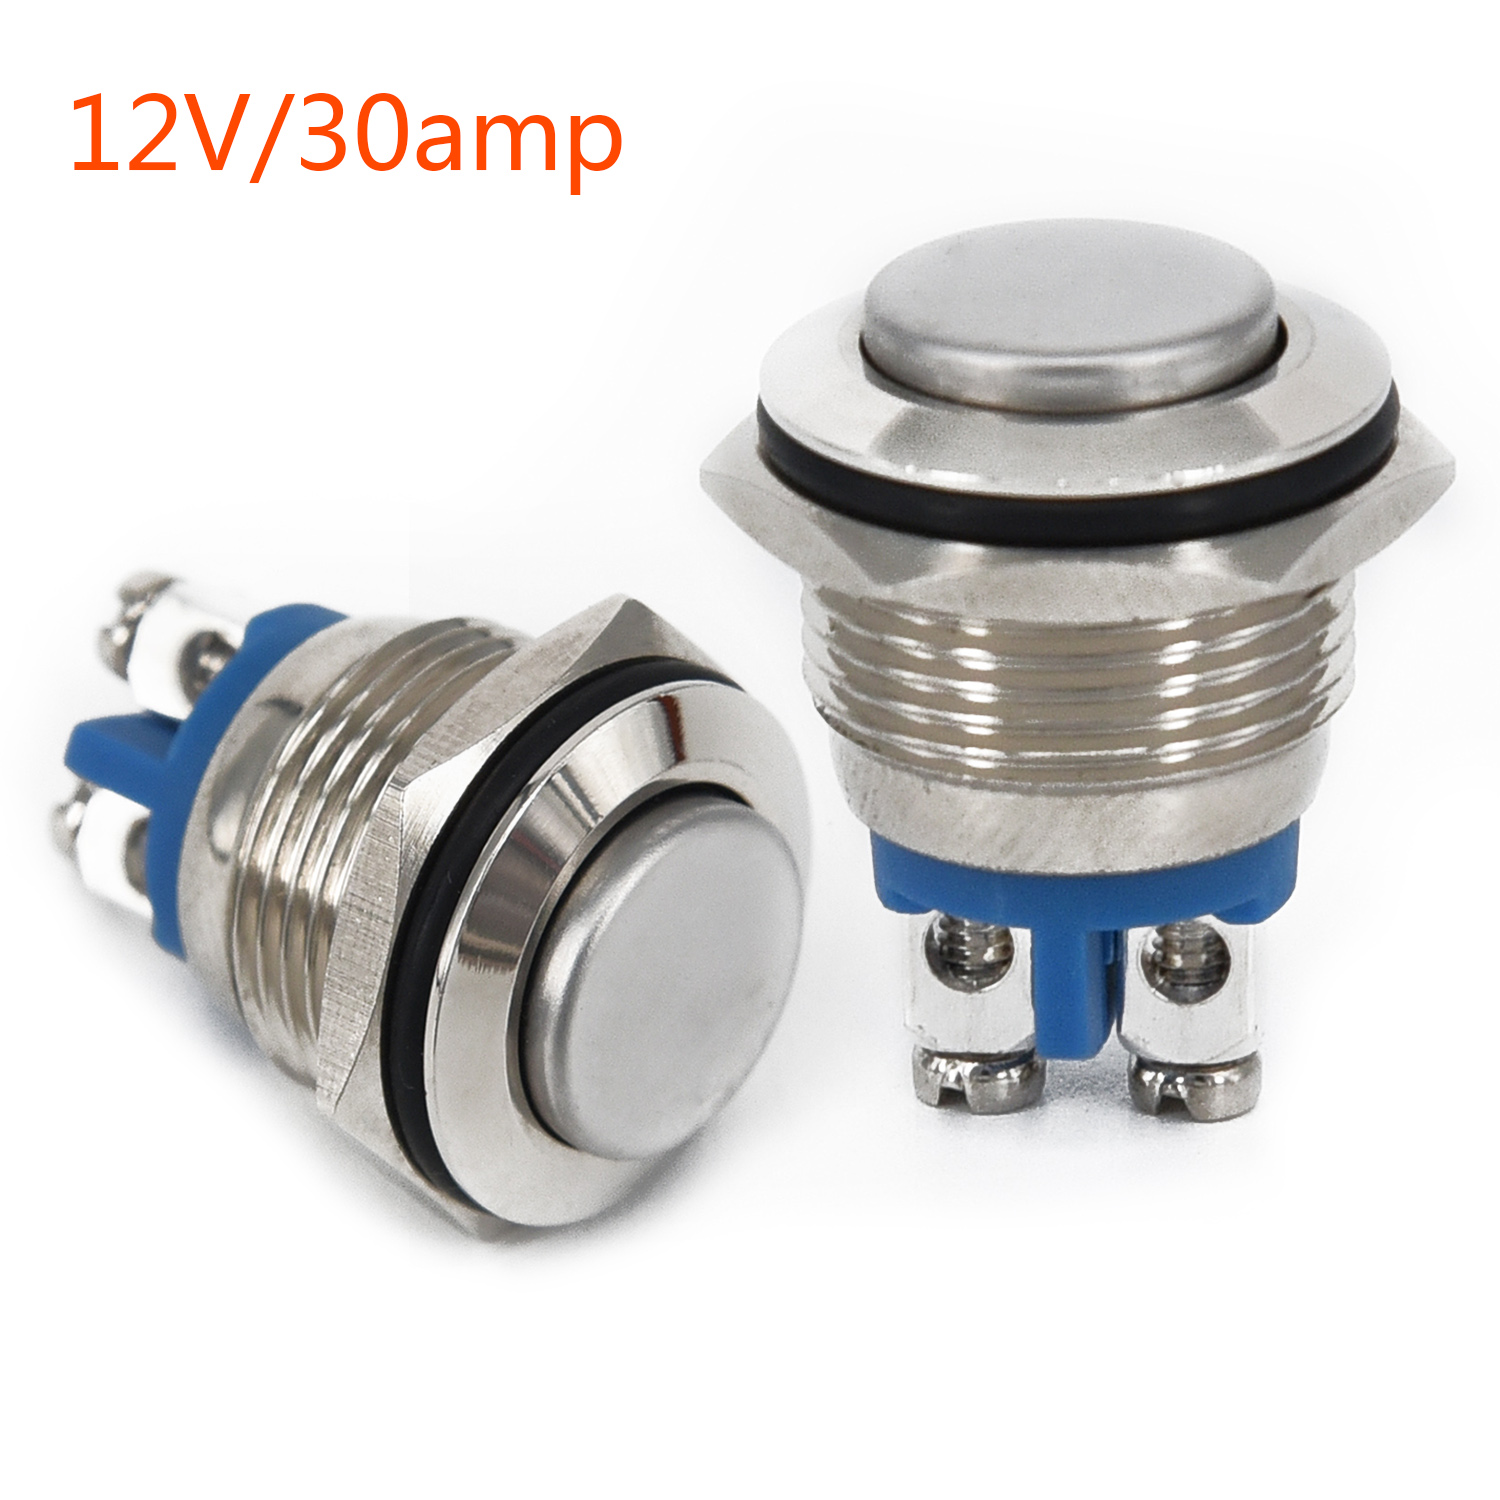 1Pc 16mm waterproof momentary metal push button switch round switches  CN